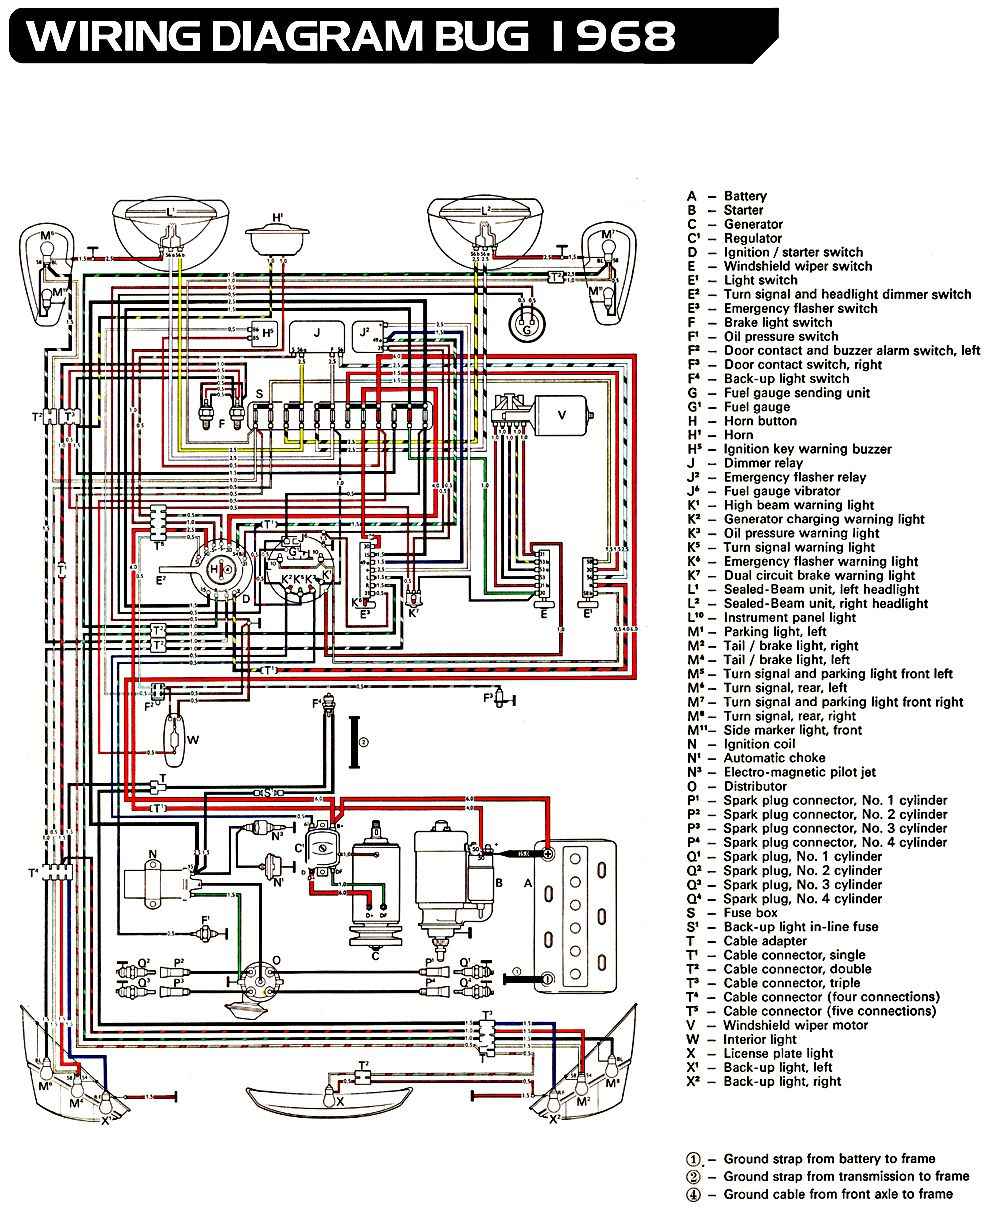 3a1908112d3826270ed5e3be362292bf vw bug ignition wiring diagram 73 vw wiring diagram free vw bug wiring diagram at readyjetset.co